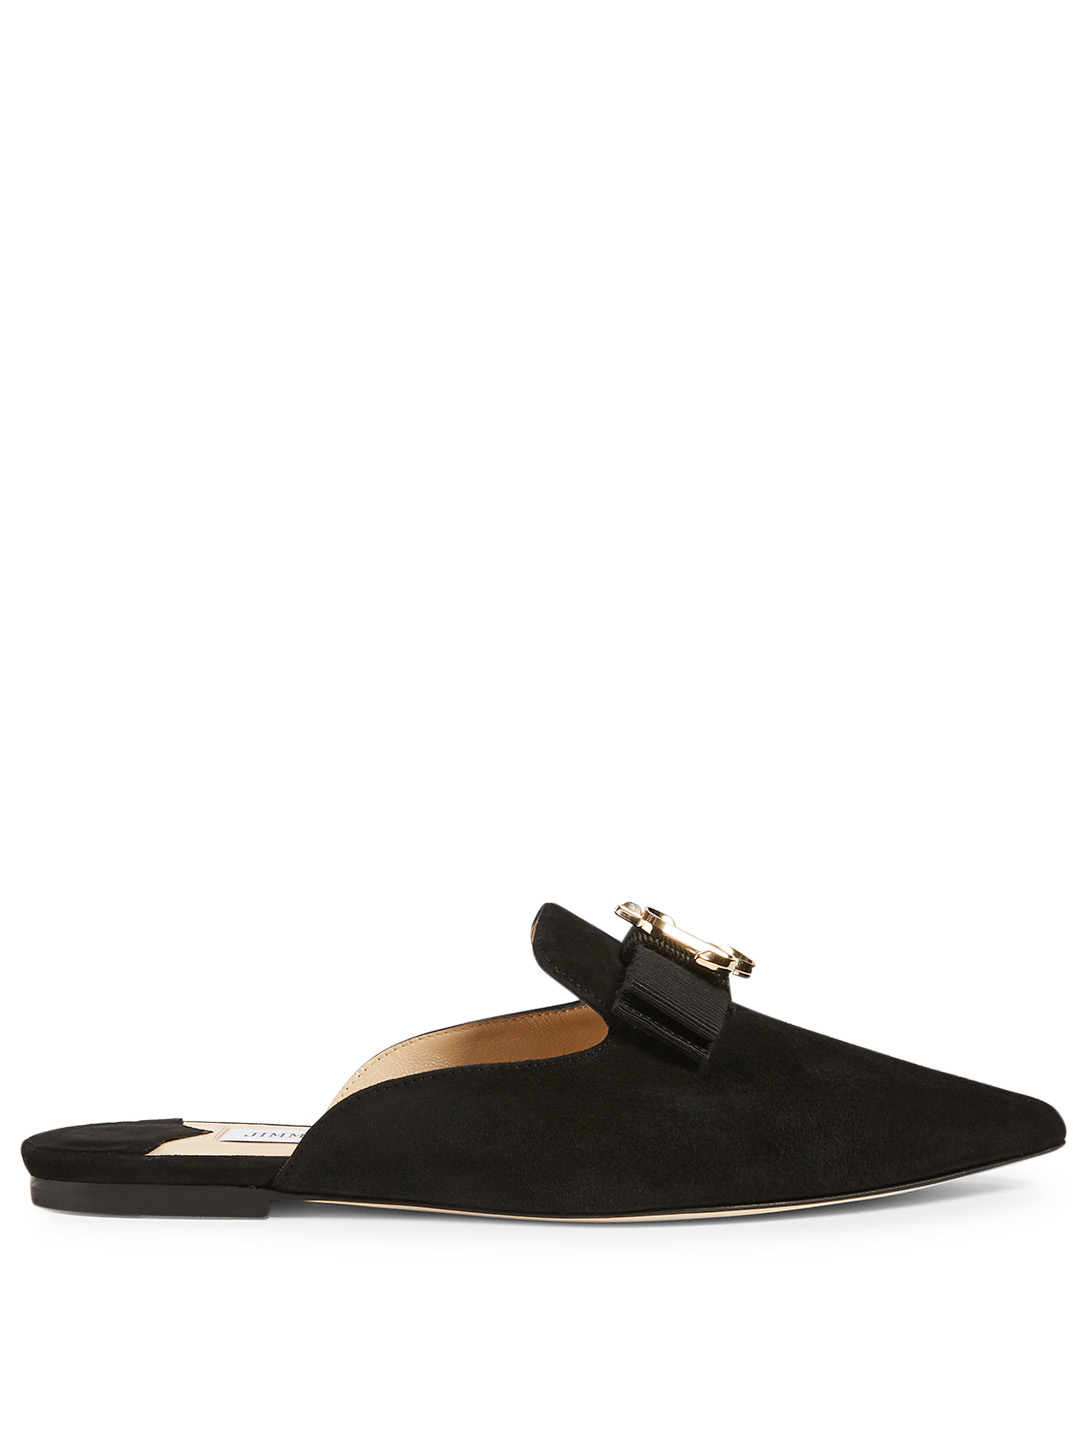 JIMMY CHOO Galaxy Suede Flat Mules Women's Black